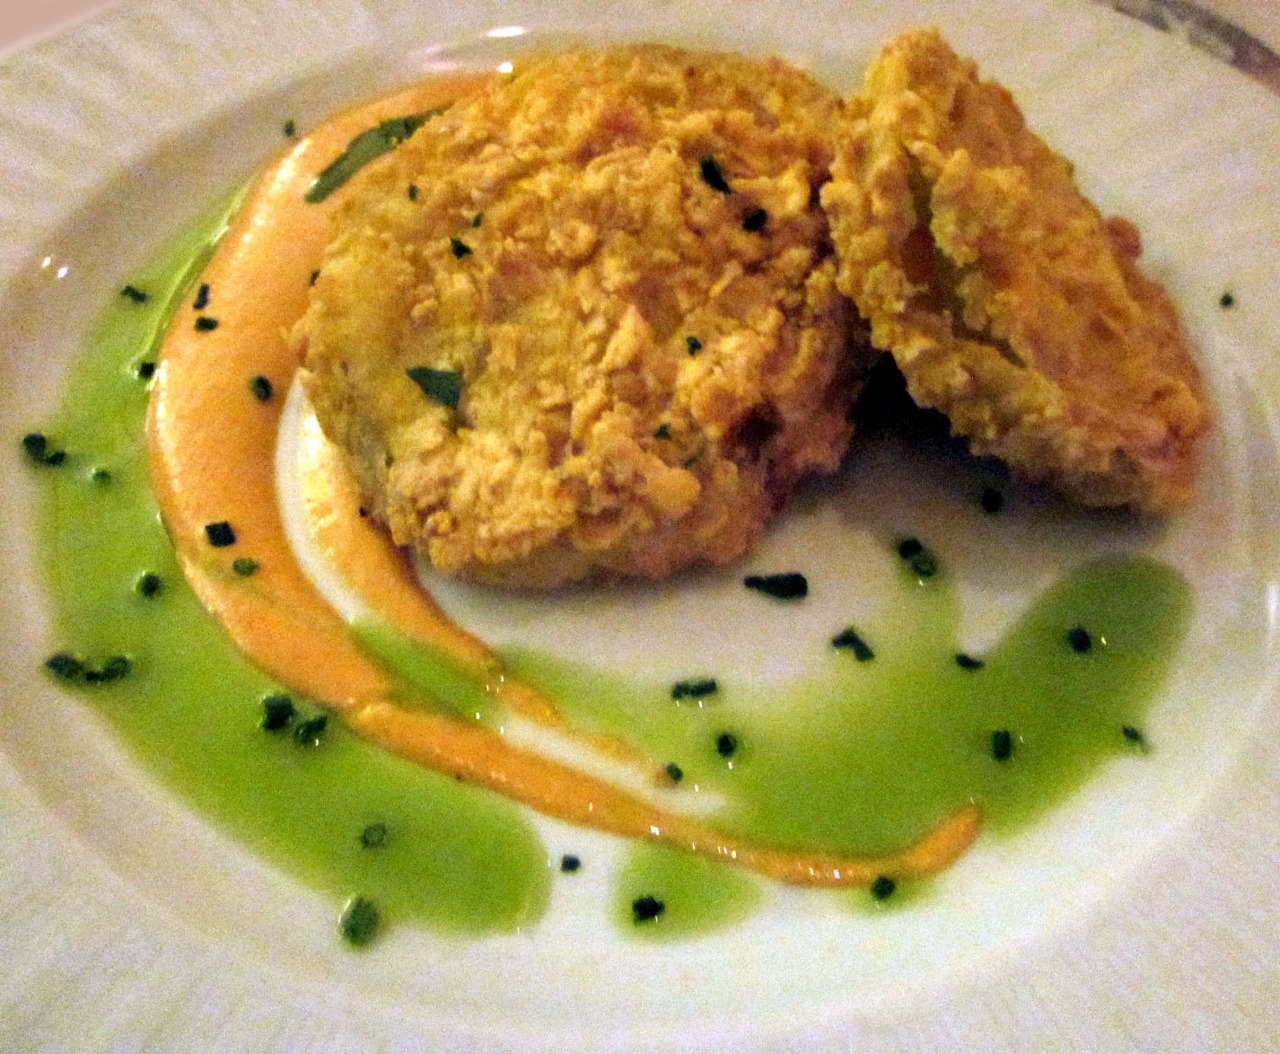 Fried Green Tomatoes with Smoked Tomato Aioli at DC Coast in Washington, DC After walking off my amazing three-course lunch from Zola and resuming my residency in Dupont Circle for much of the afternoon, I went back to my brother's apartment to hang out before getting ready for dinner. A few episodes of The Wire and twice as many beers later, we were ready to go. Of course, it was Restaurant Week, so we were going to go crazy with another three-course meal (here's their RW menu). The goal, in general, is to get the most expensive things, and get as much for your money as possible. But having just had a seafood and corn soup earlier, I went with the tomatoes for my appetizer. Normally relegated to bar food, DC transformed this (mainly) Southern specialty into a restaurant quality appetizer. Anything fried is going to be delicious, but these tomatillos held their tartness, and went real well with the smoky roasted tomato aioli. It was a great start; but the place is called DC Coast, which means I was definitely ordering seafood, and they did not disappoint.